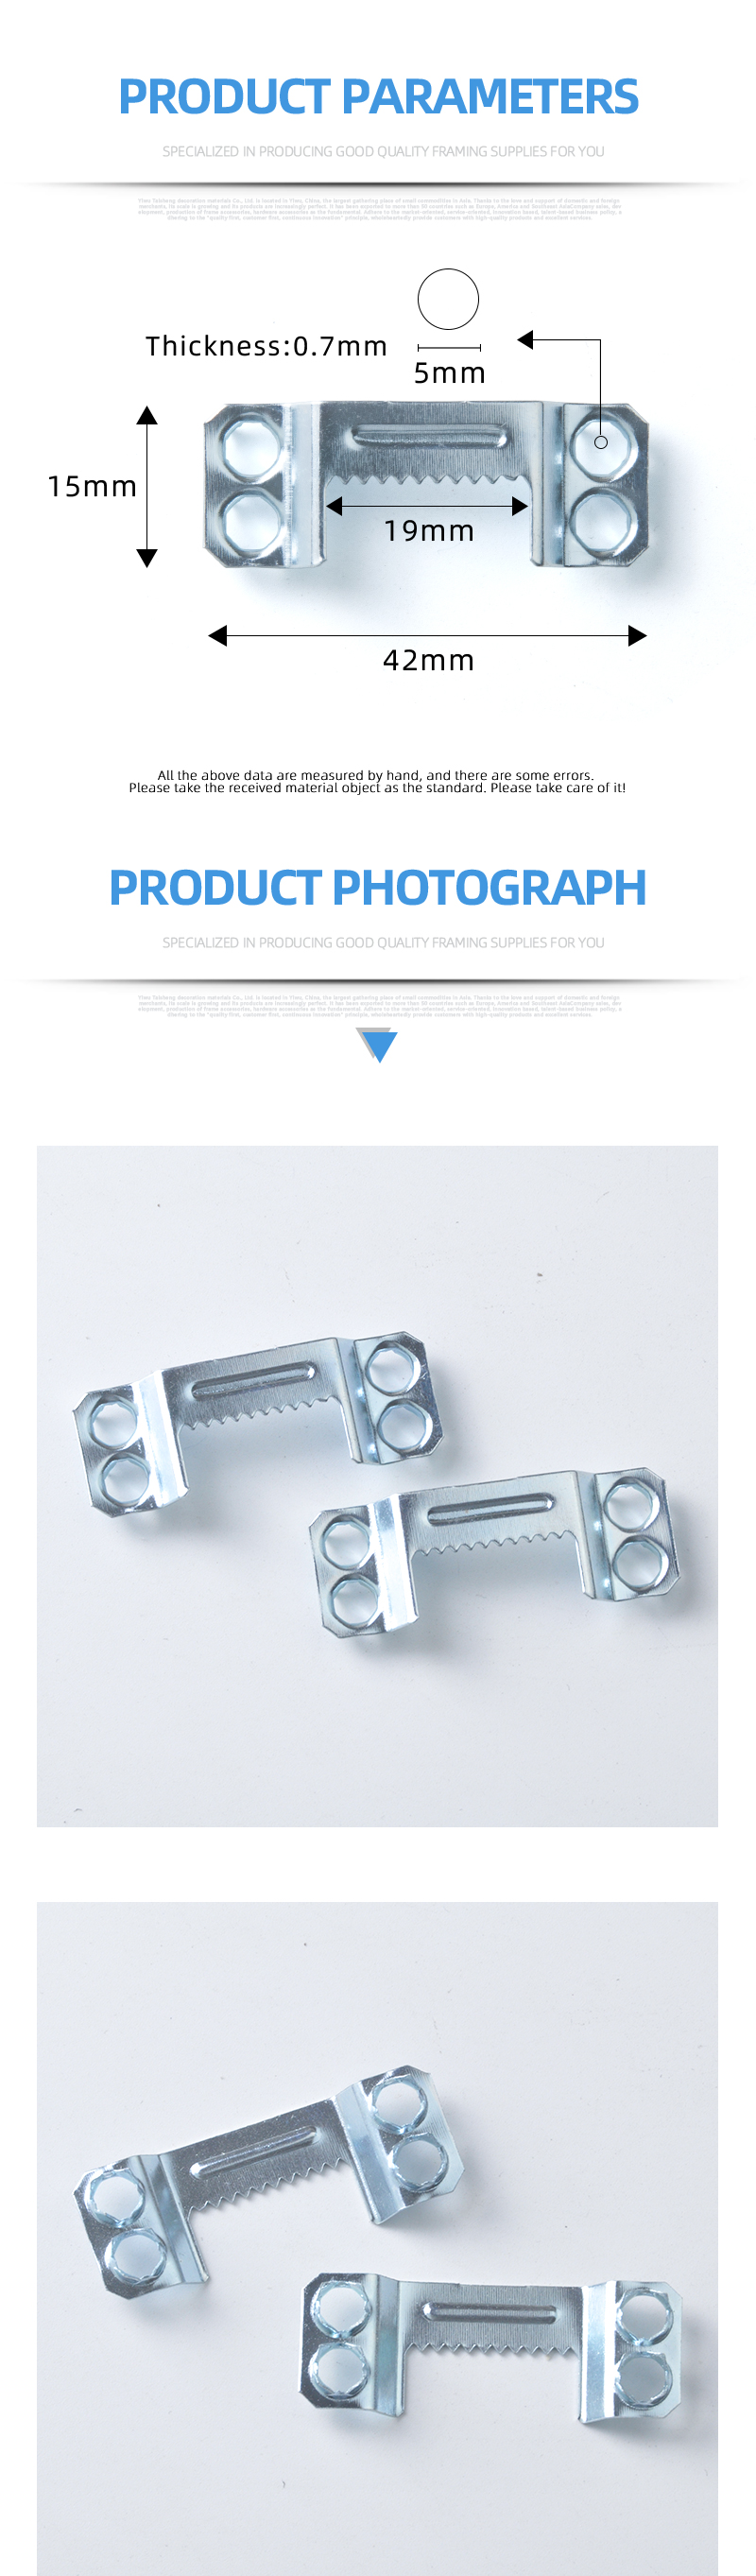 Blue zinc-plated alligator hooks Suspension fittings